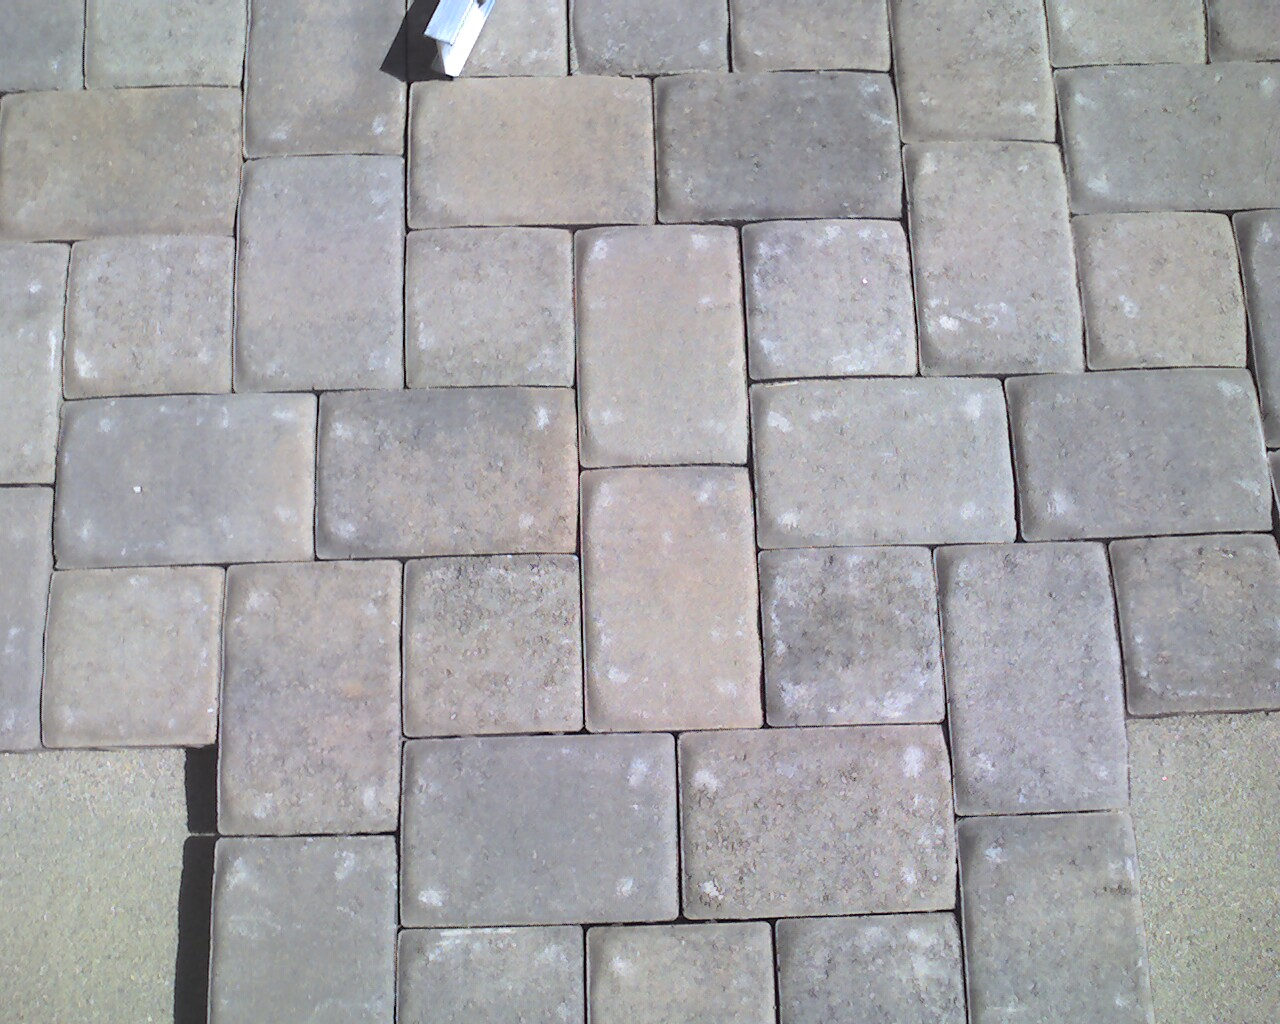 k pattern pavers submited images